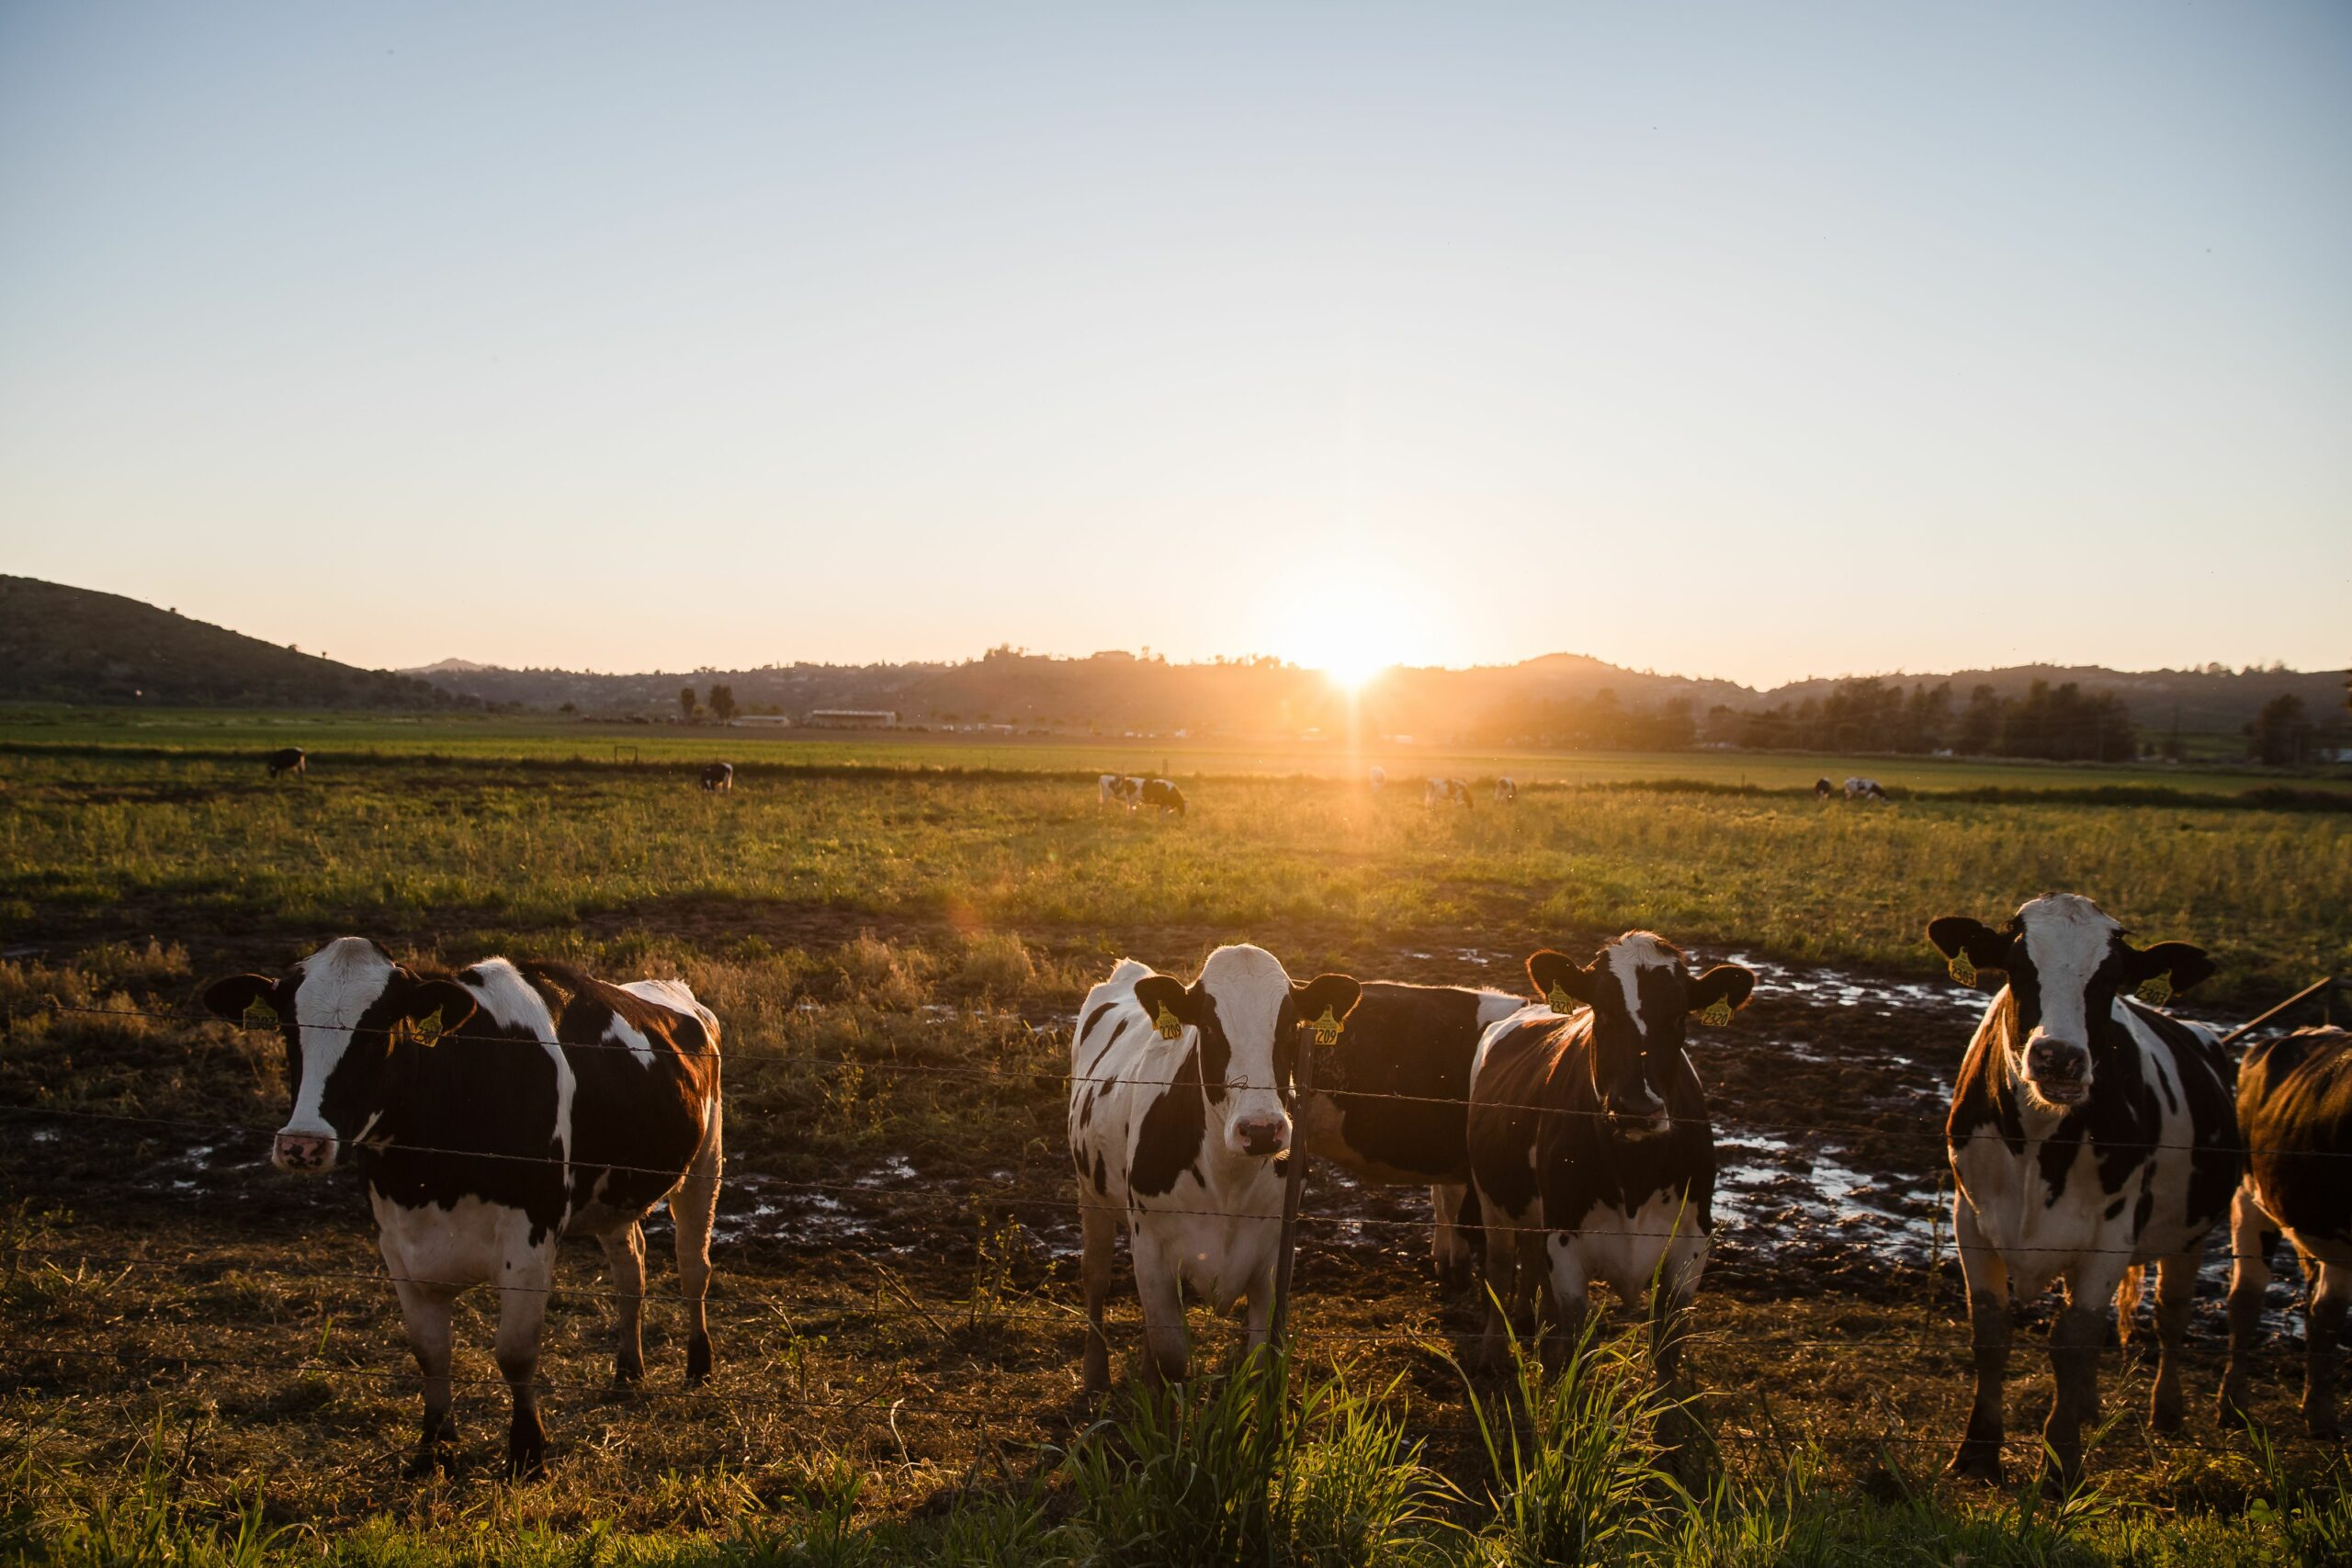 A view of cattle ruminating around Frank Konyn Dairy Inc., on April 16, 2020, in Escondido, California. Credit: Ariana Drehsler /AFP via Getty Images